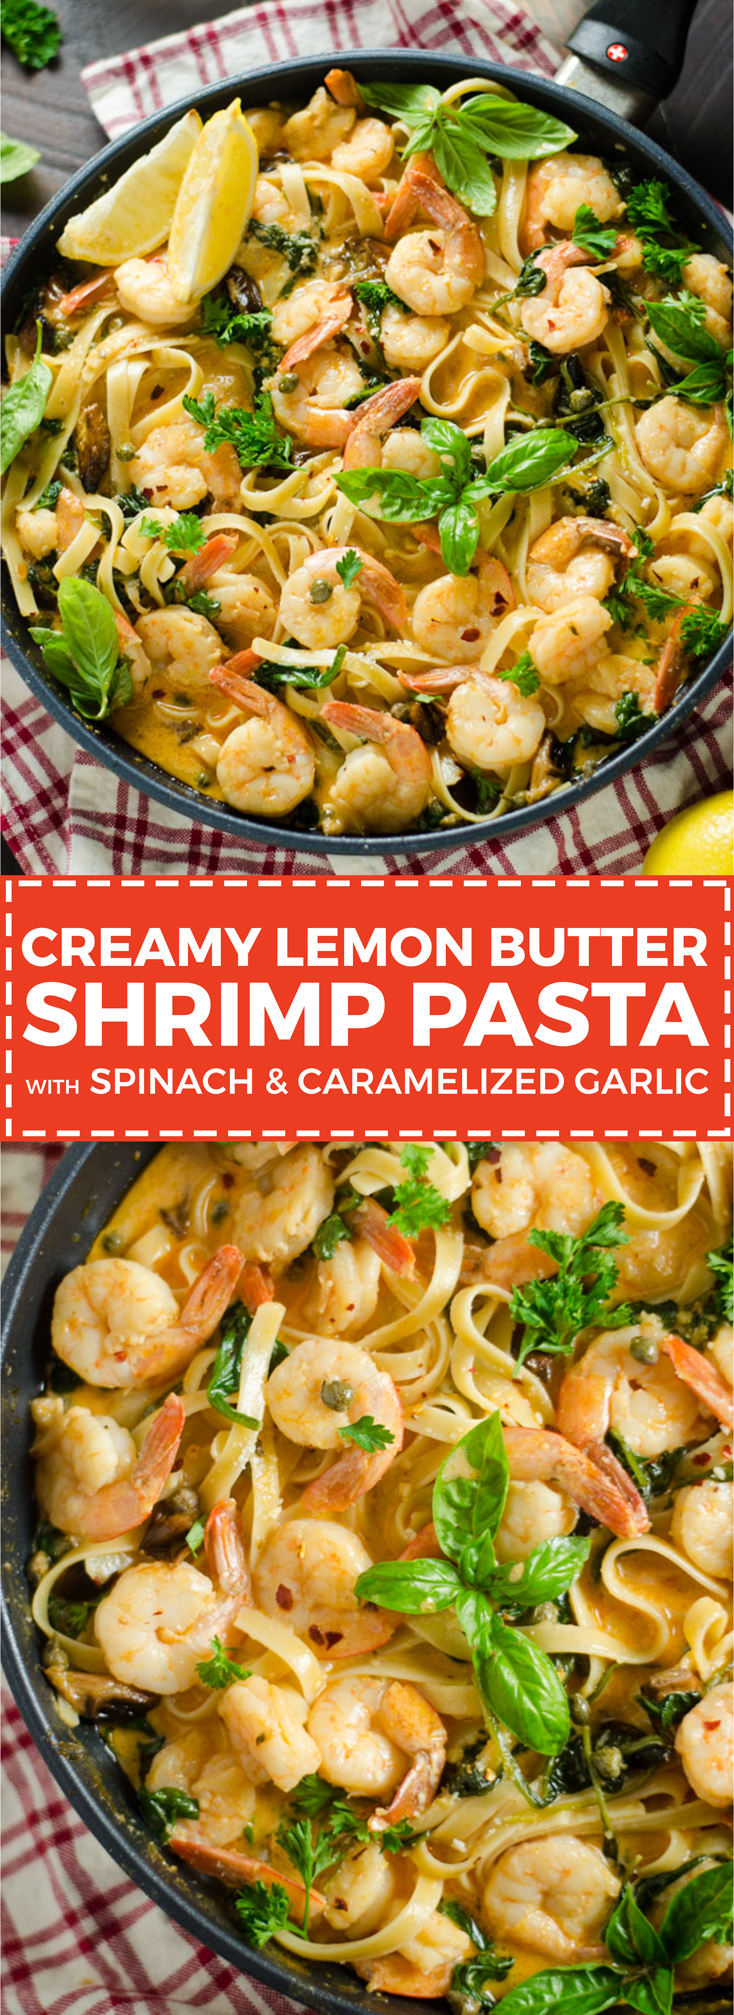 Creamy lemon butter shrimp pasta with spinach and caramelized garlic creamy lemon butter shrimp pasta with spinach and caramelized garlic this dinner recipe dials the forumfinder